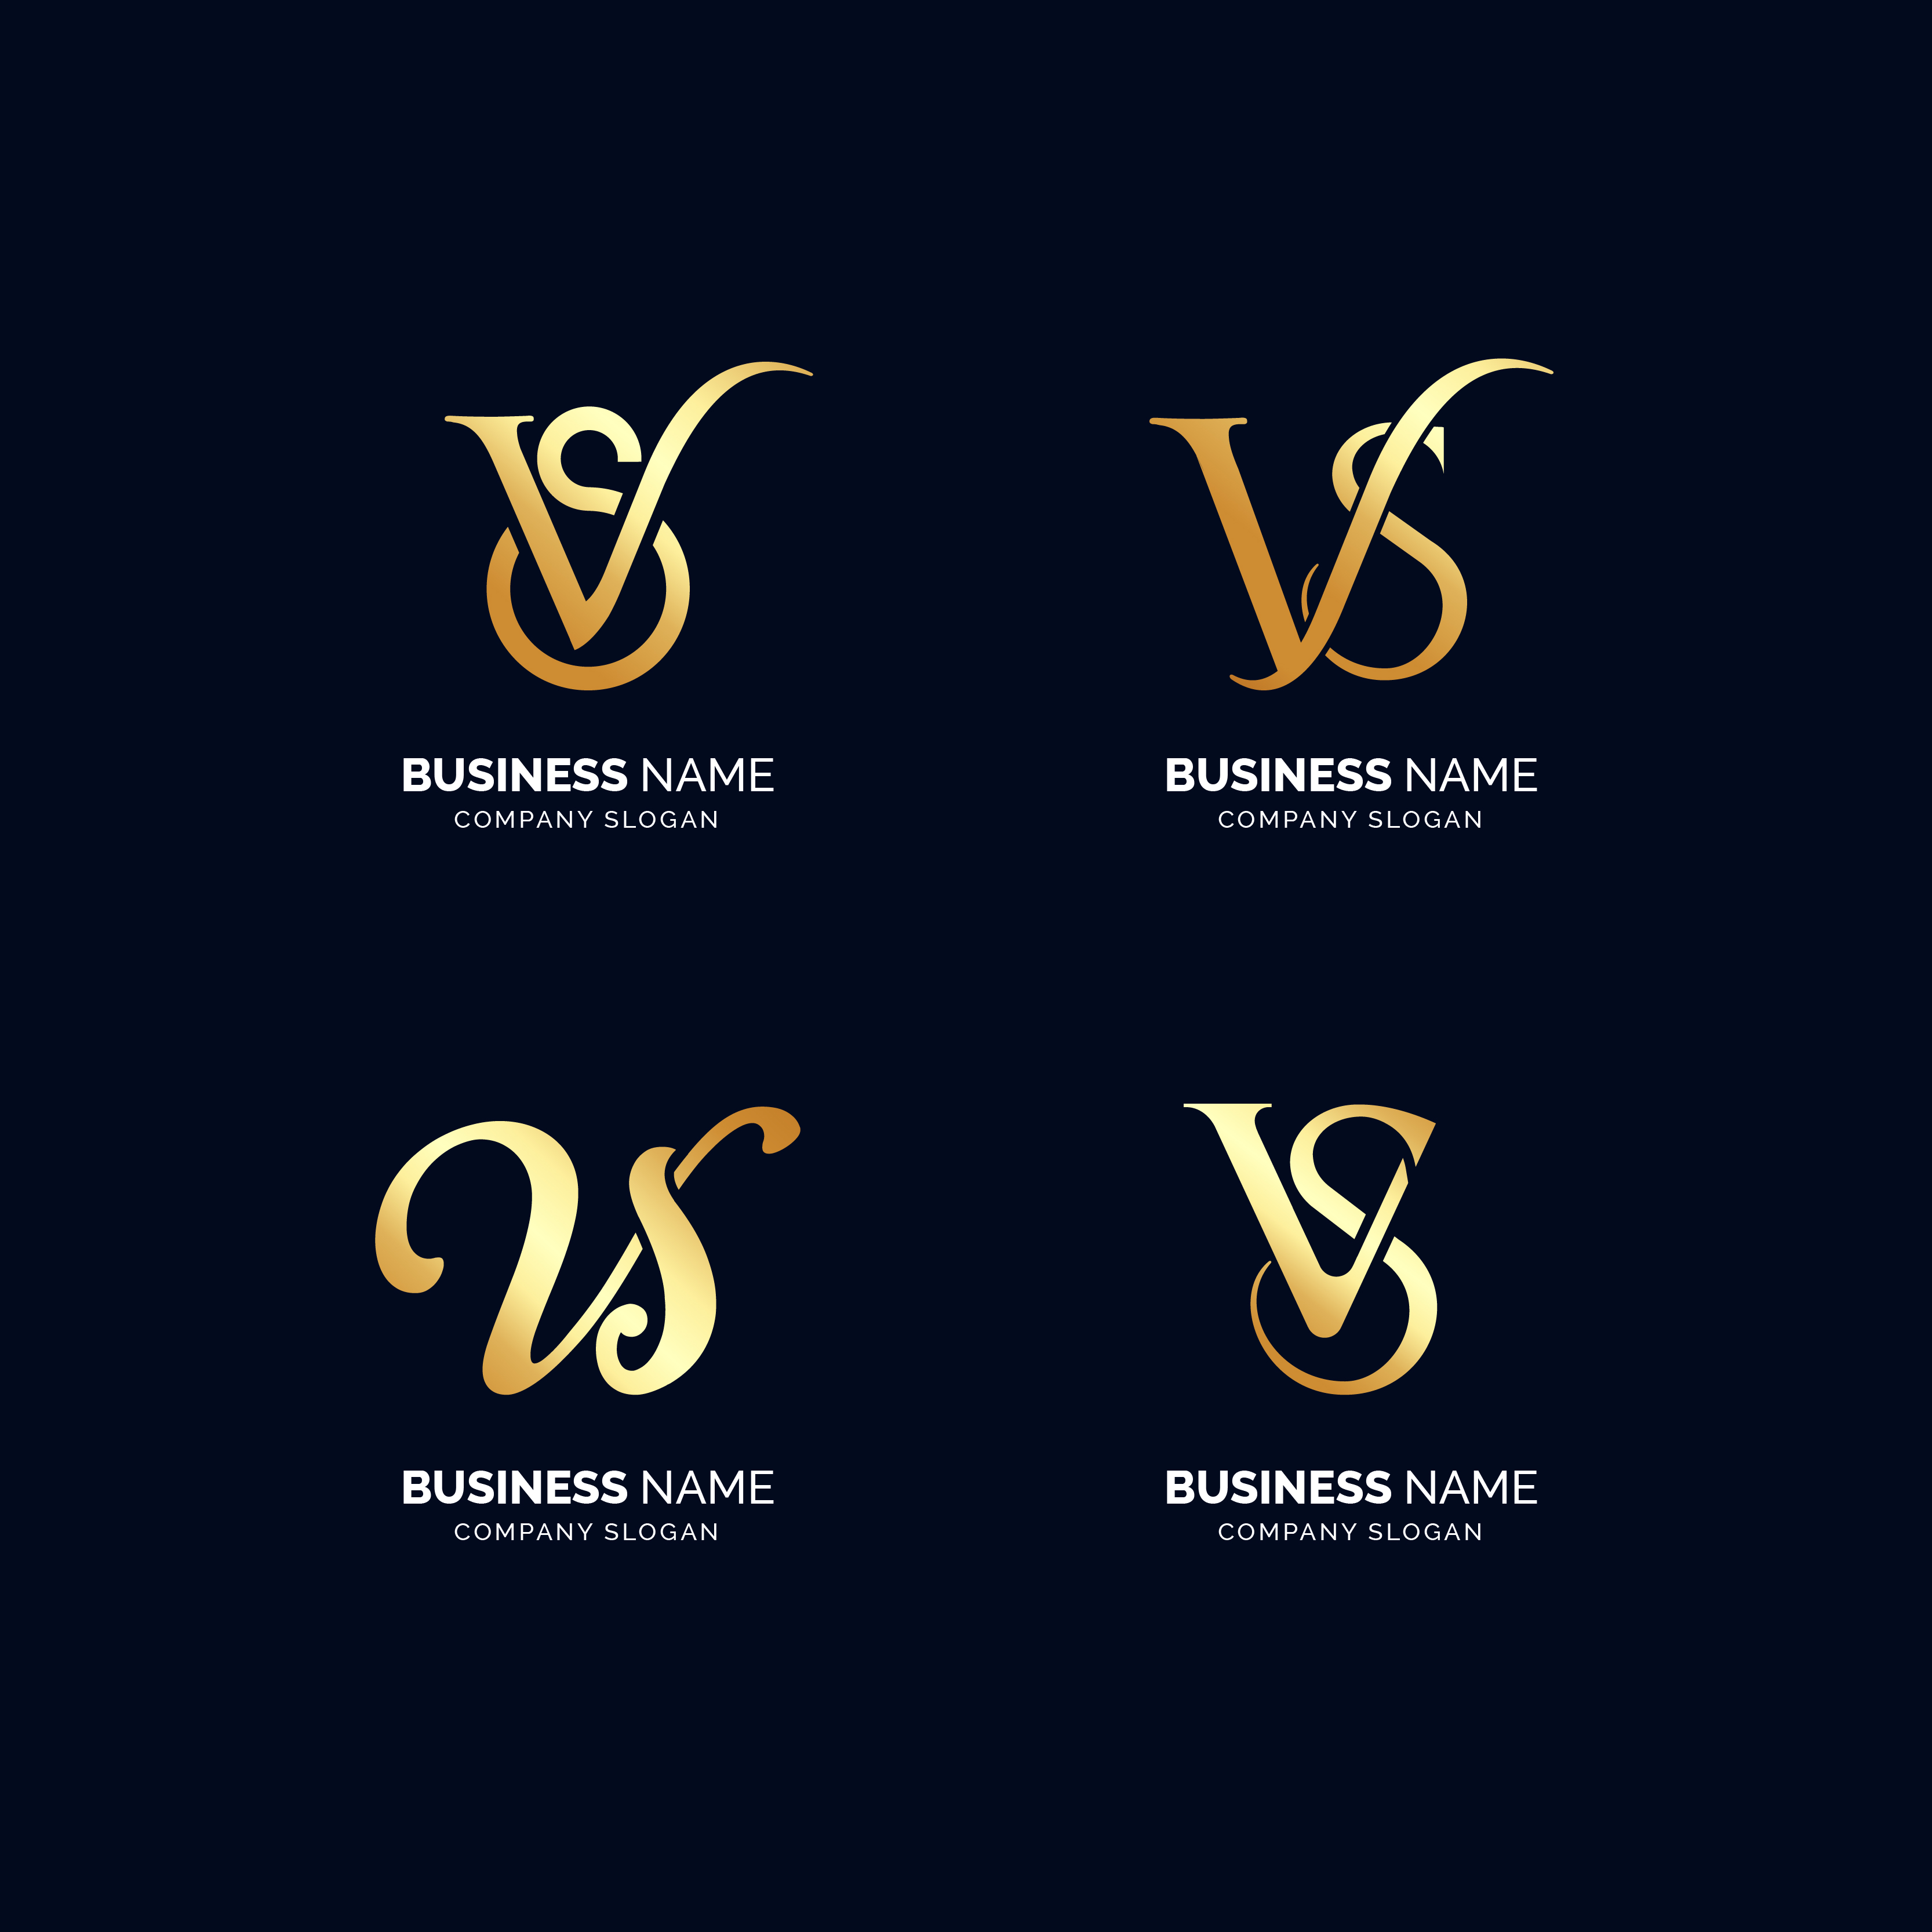 Vs Logo Free Vector Art 157 Free Downloads Red blue vs metal font, luminous efficiency, light, design png transparent clipart image and psd file for free download. vs logo free vector art 157 free